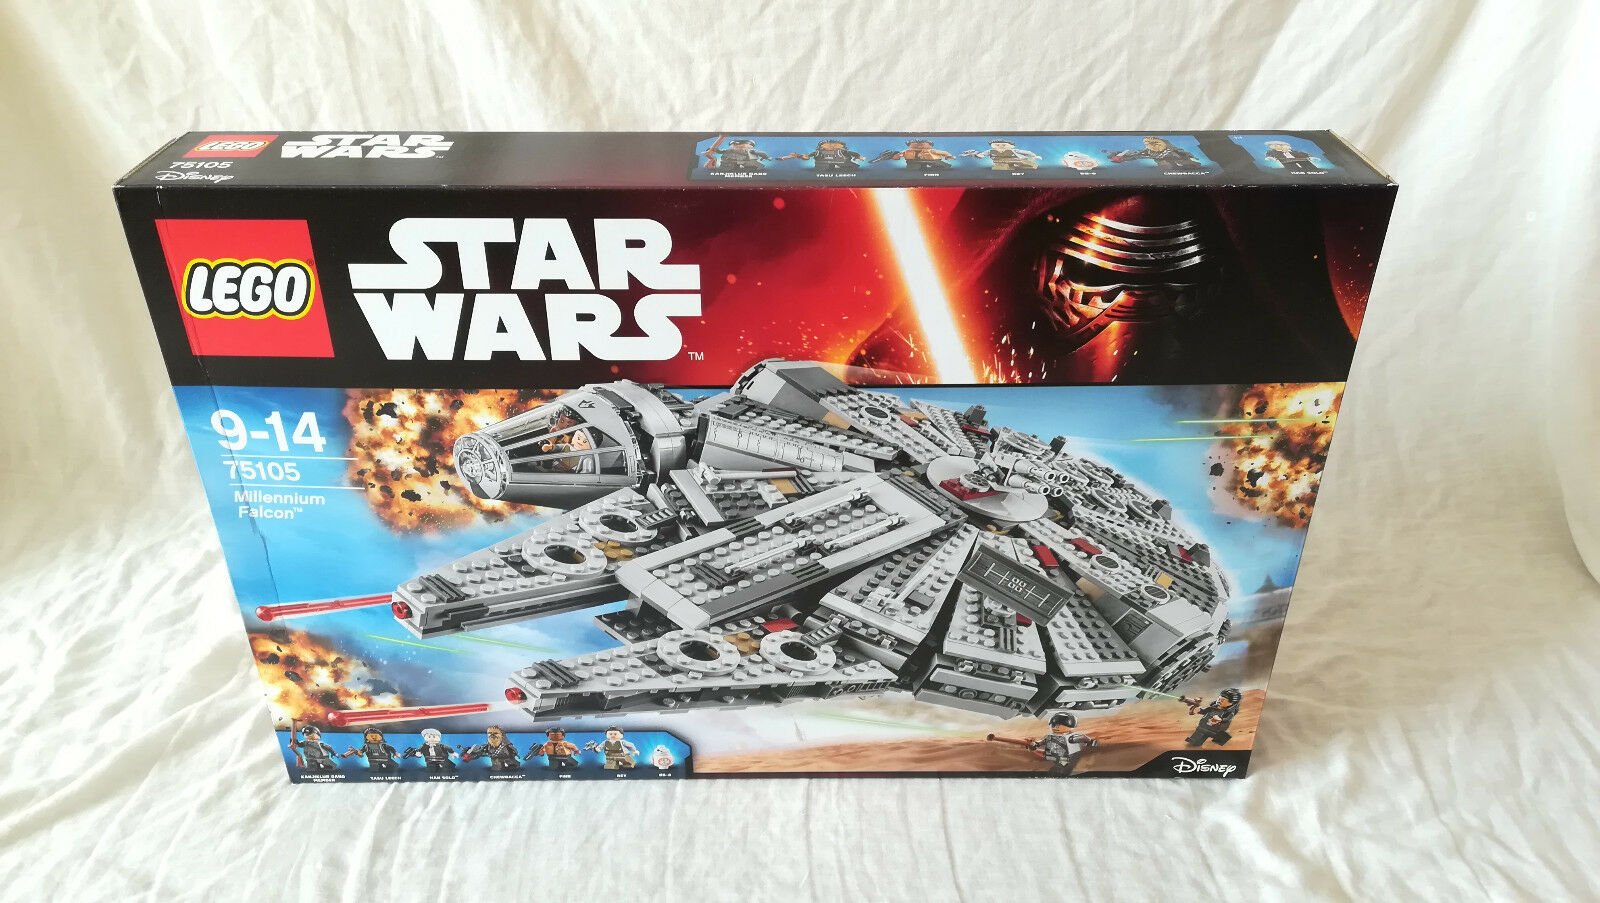 LEGO Star Wars 75105 MILLENNIUM FALCON - Brand new